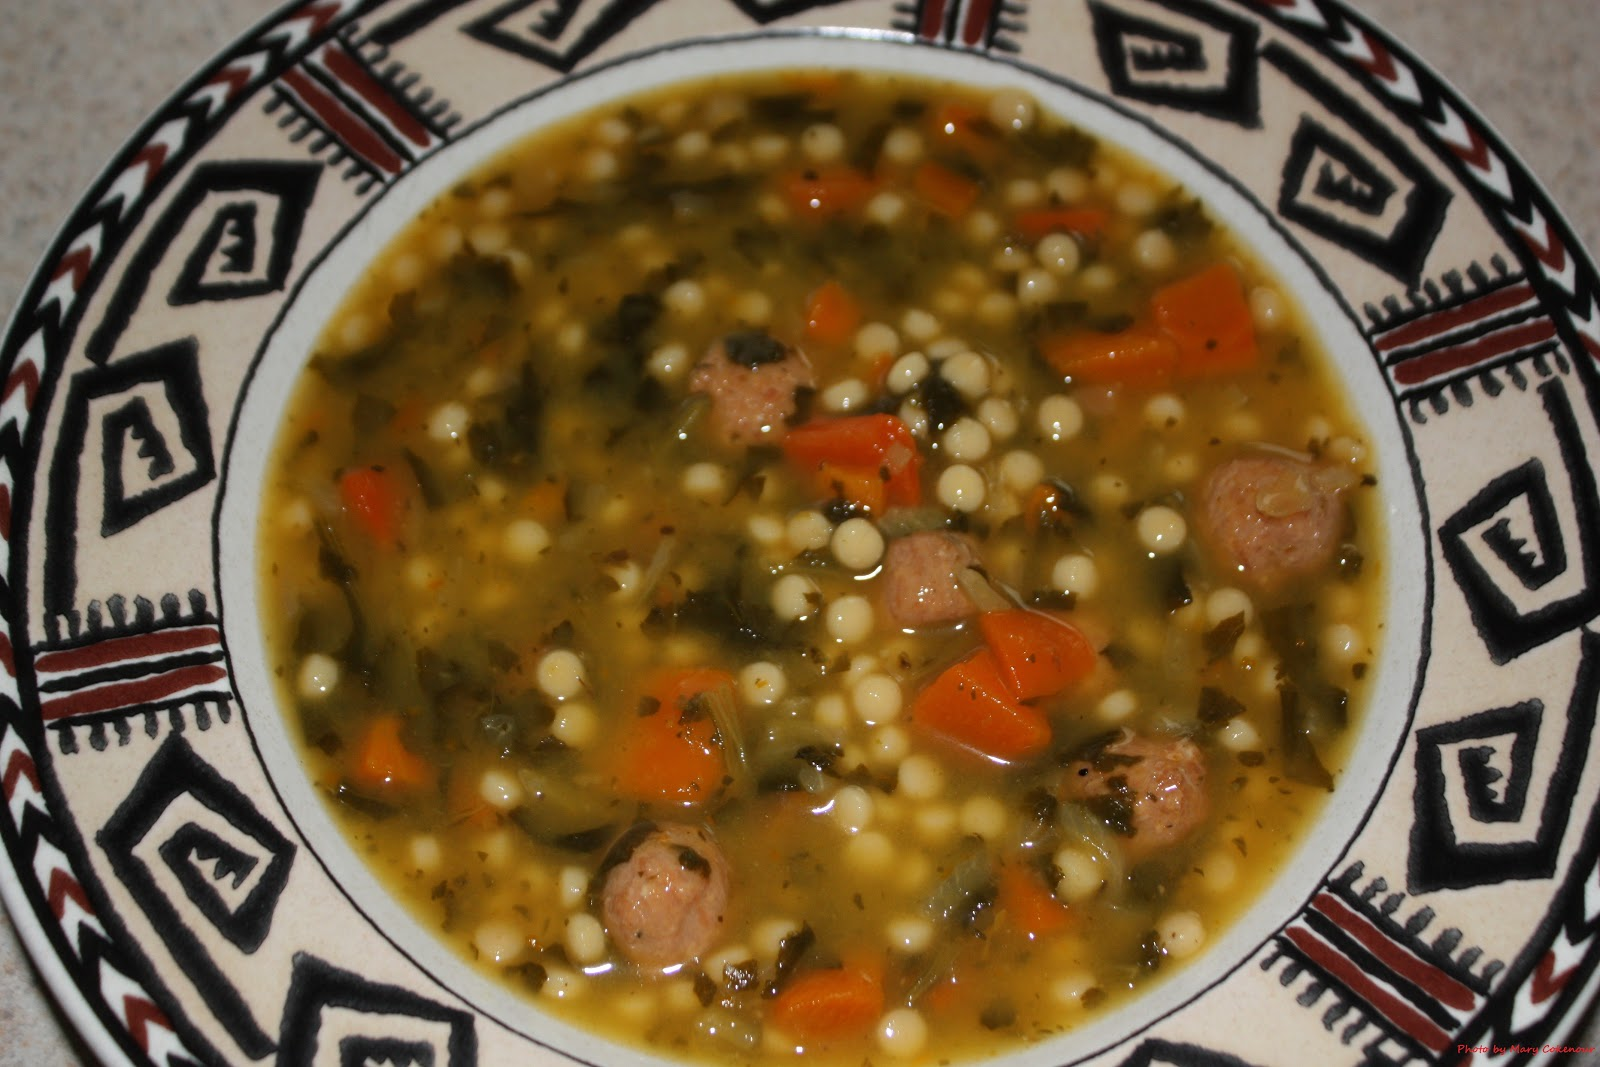 italian wedding soup has its origins in the united states